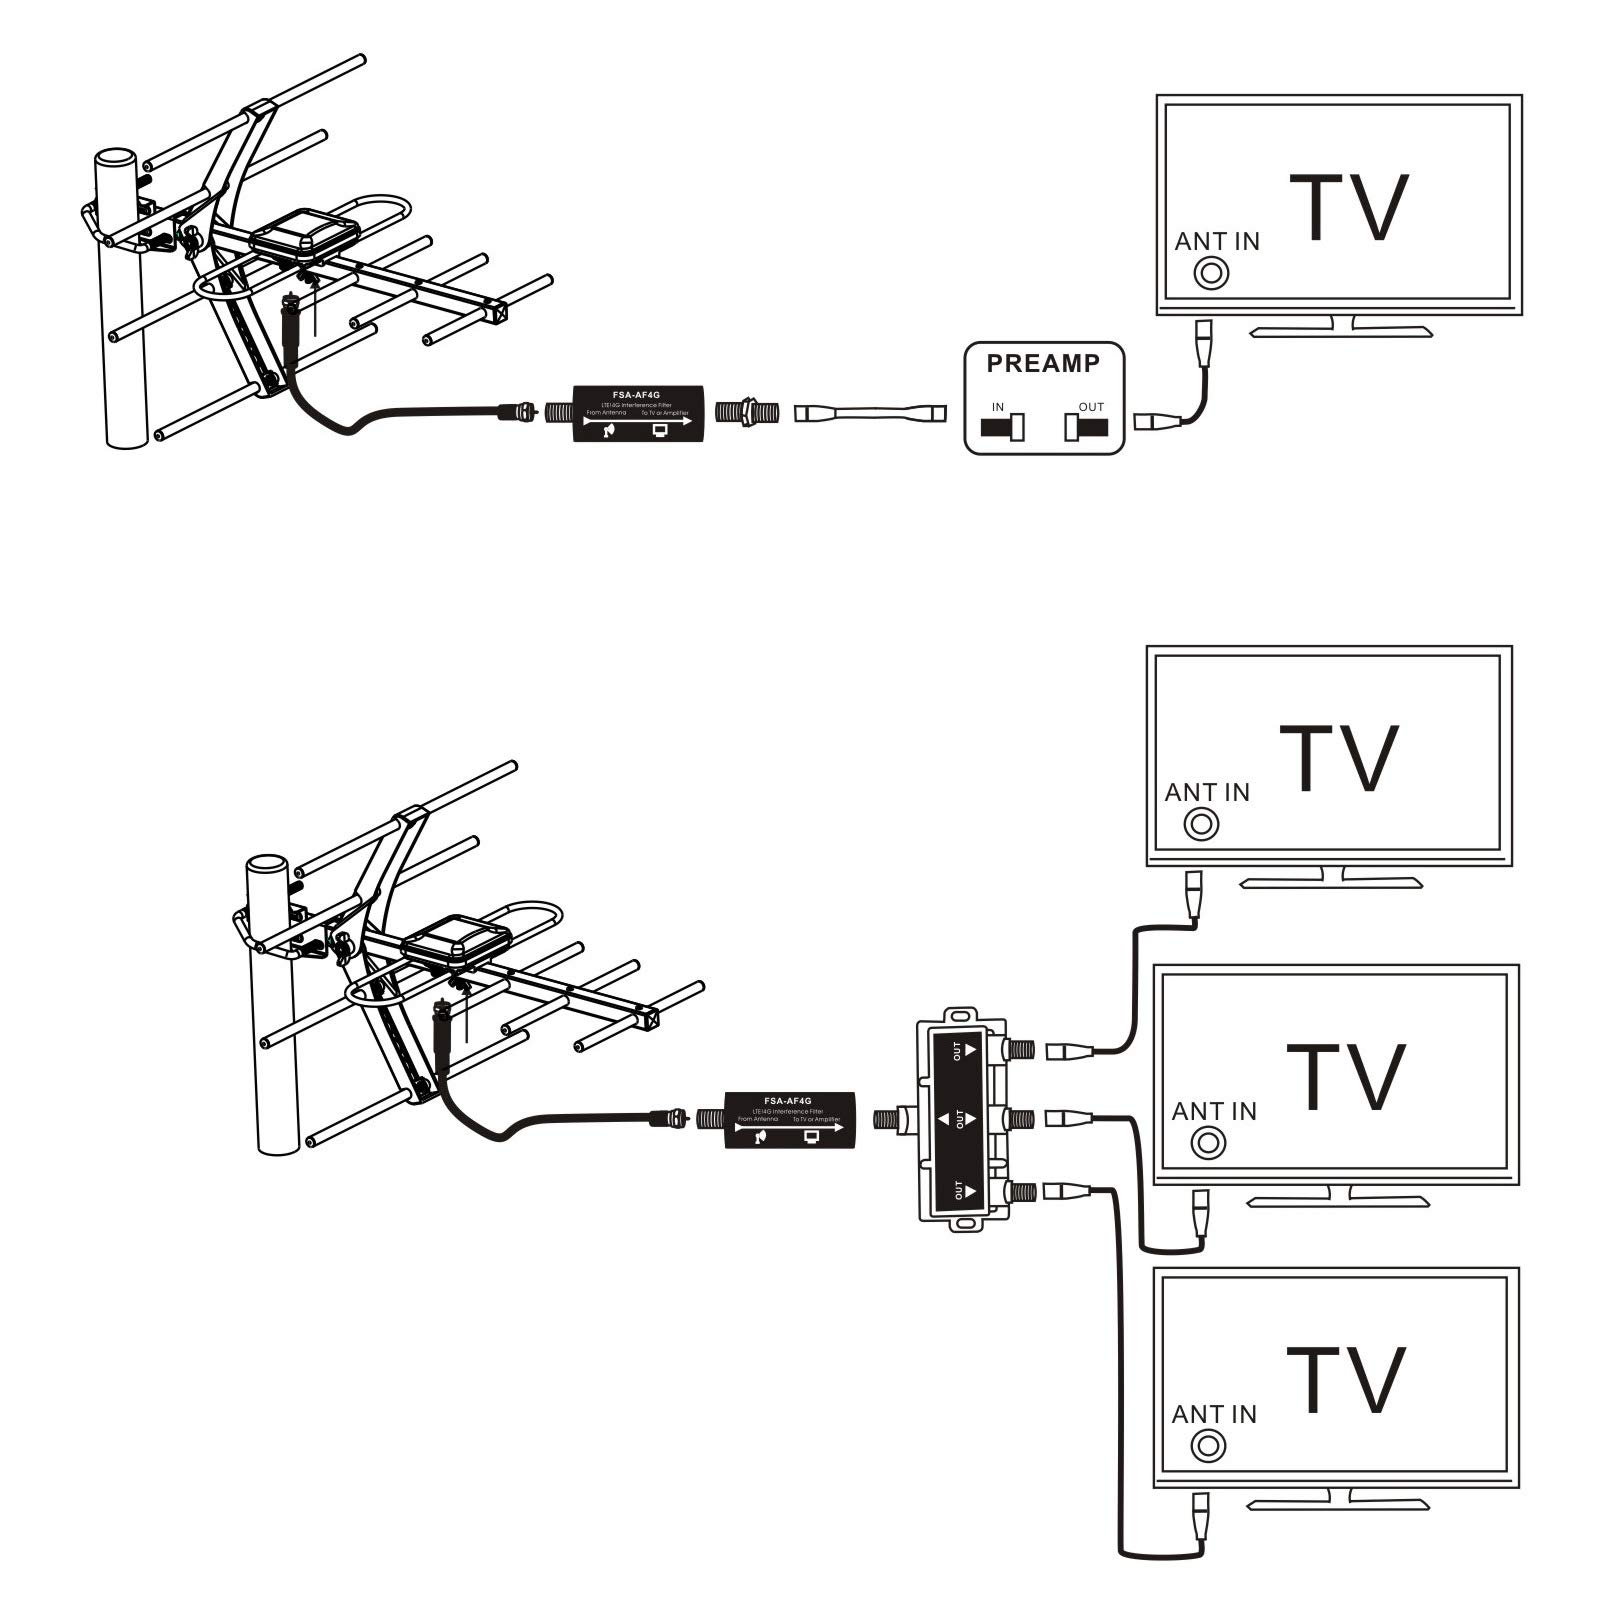 Pass Frequency 5-599Mhz HDTV Antennas Signal Purifier Reduces Interference from Cell Towers Five Star LTE Filter Improves TV Antenna Signals Filters 4G Signal for a Clear Channels